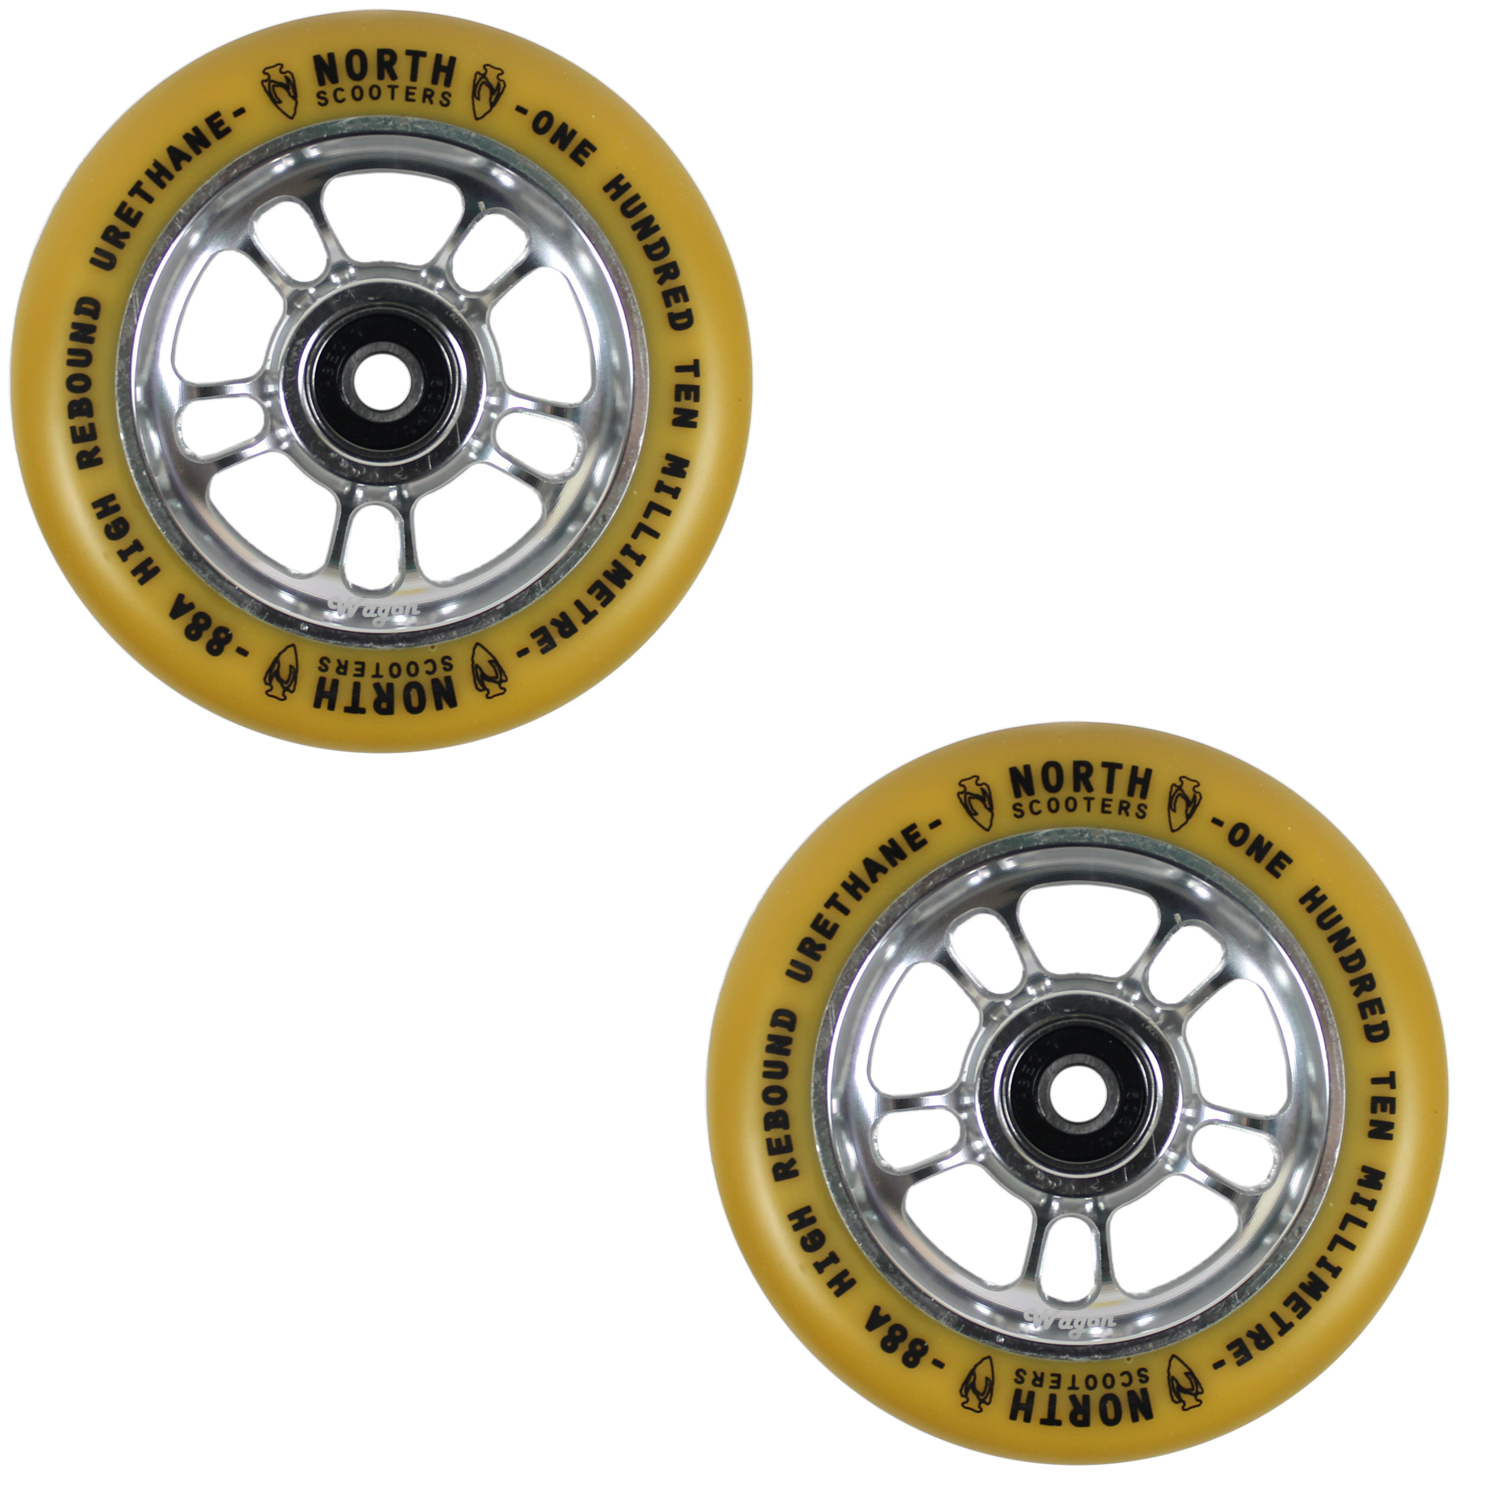 Details about North Scooters Wagon Gum 88A Scooter Wheels Silver 110mm Pair  of 2